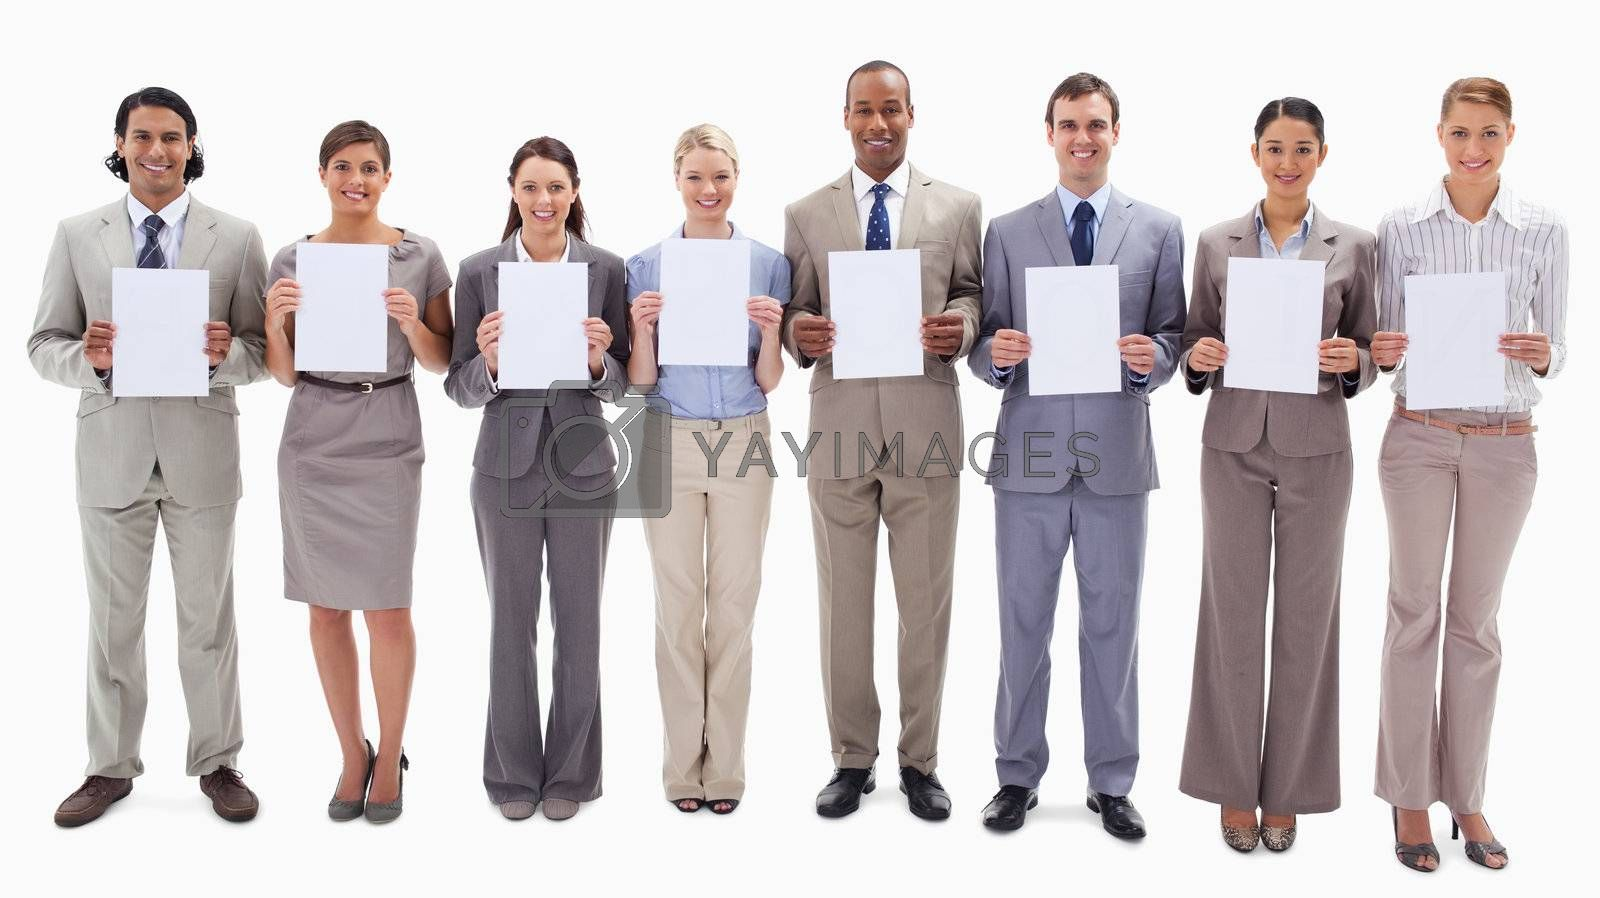 Business people smiling while holding white support for letters against white background